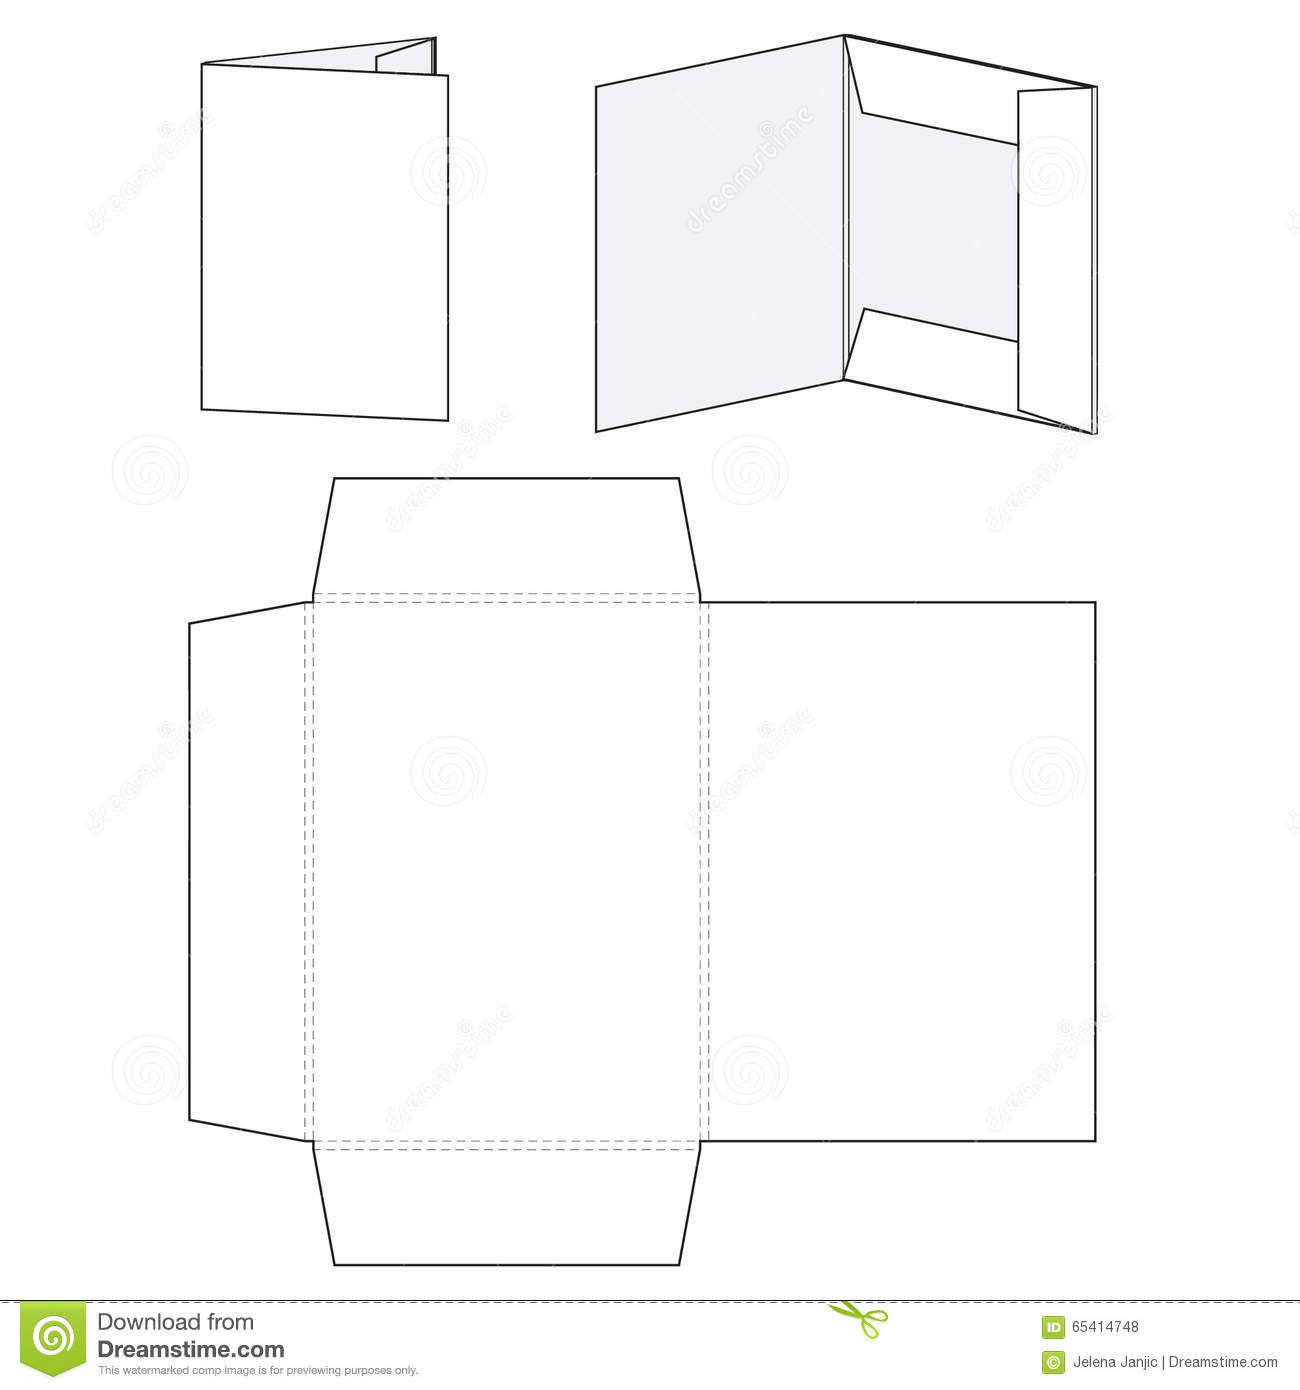 Blank Vector Calendar Template : Blank folder template stock vector illustration of